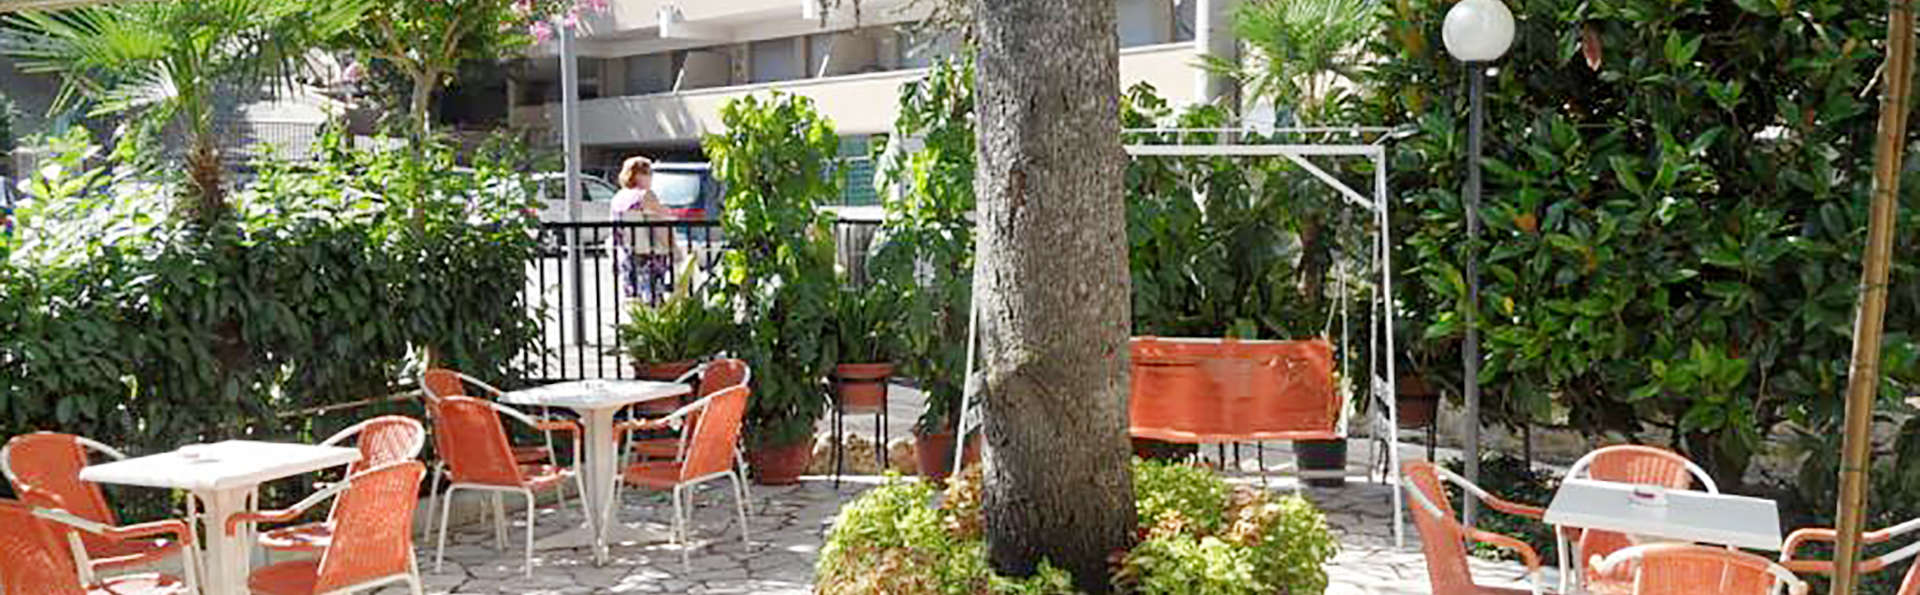 Hotel Prati - Edit_terrace.jpg